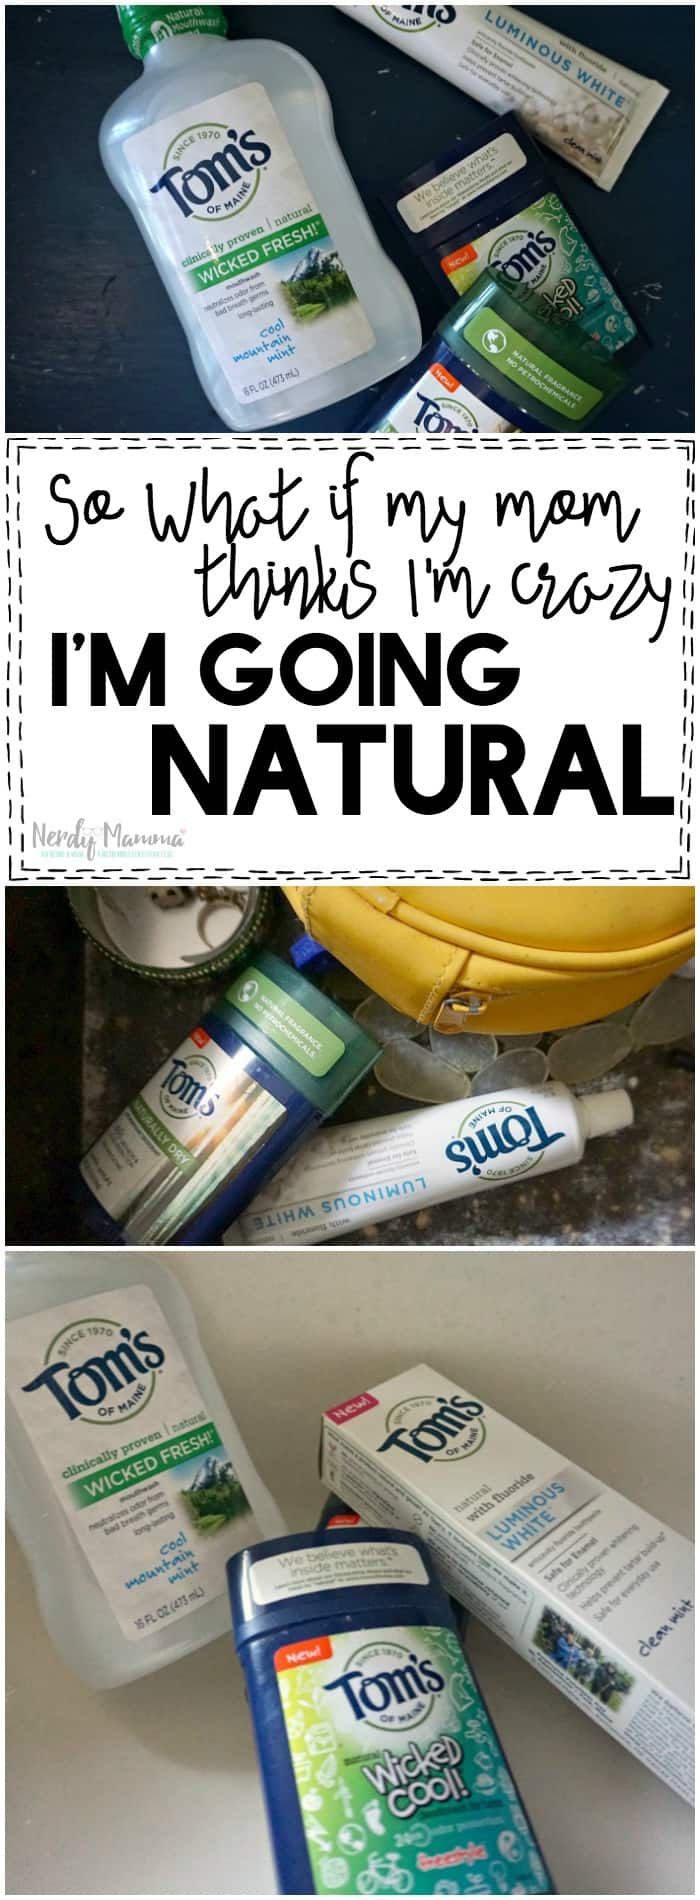 This is so interesting--this woman's journey to go natural seems so simple and easy! I might be able to do this.